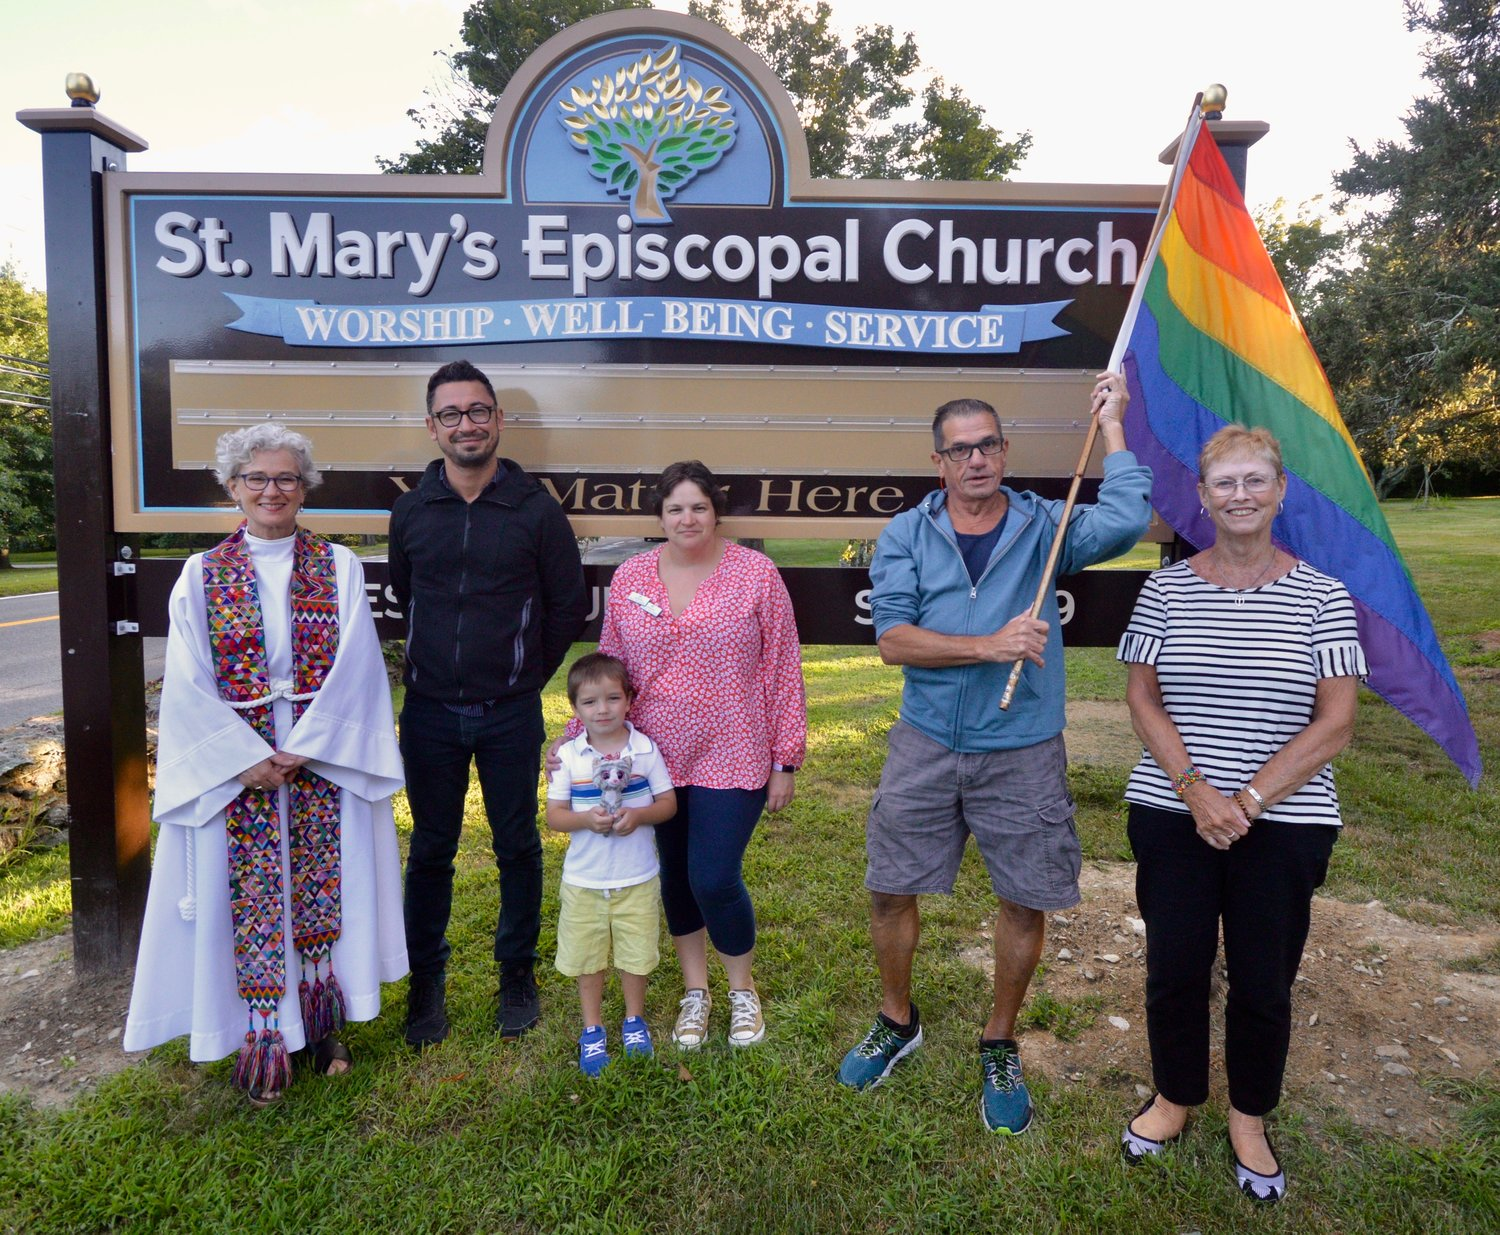 Along with some parishioners and church vestry members, Jennifer Pedrick (left), rector of St. Mary's Episcopal Church, poses with the church's new sign and rainbow flag that welcomes everyone, including members of the LGBTQ community.